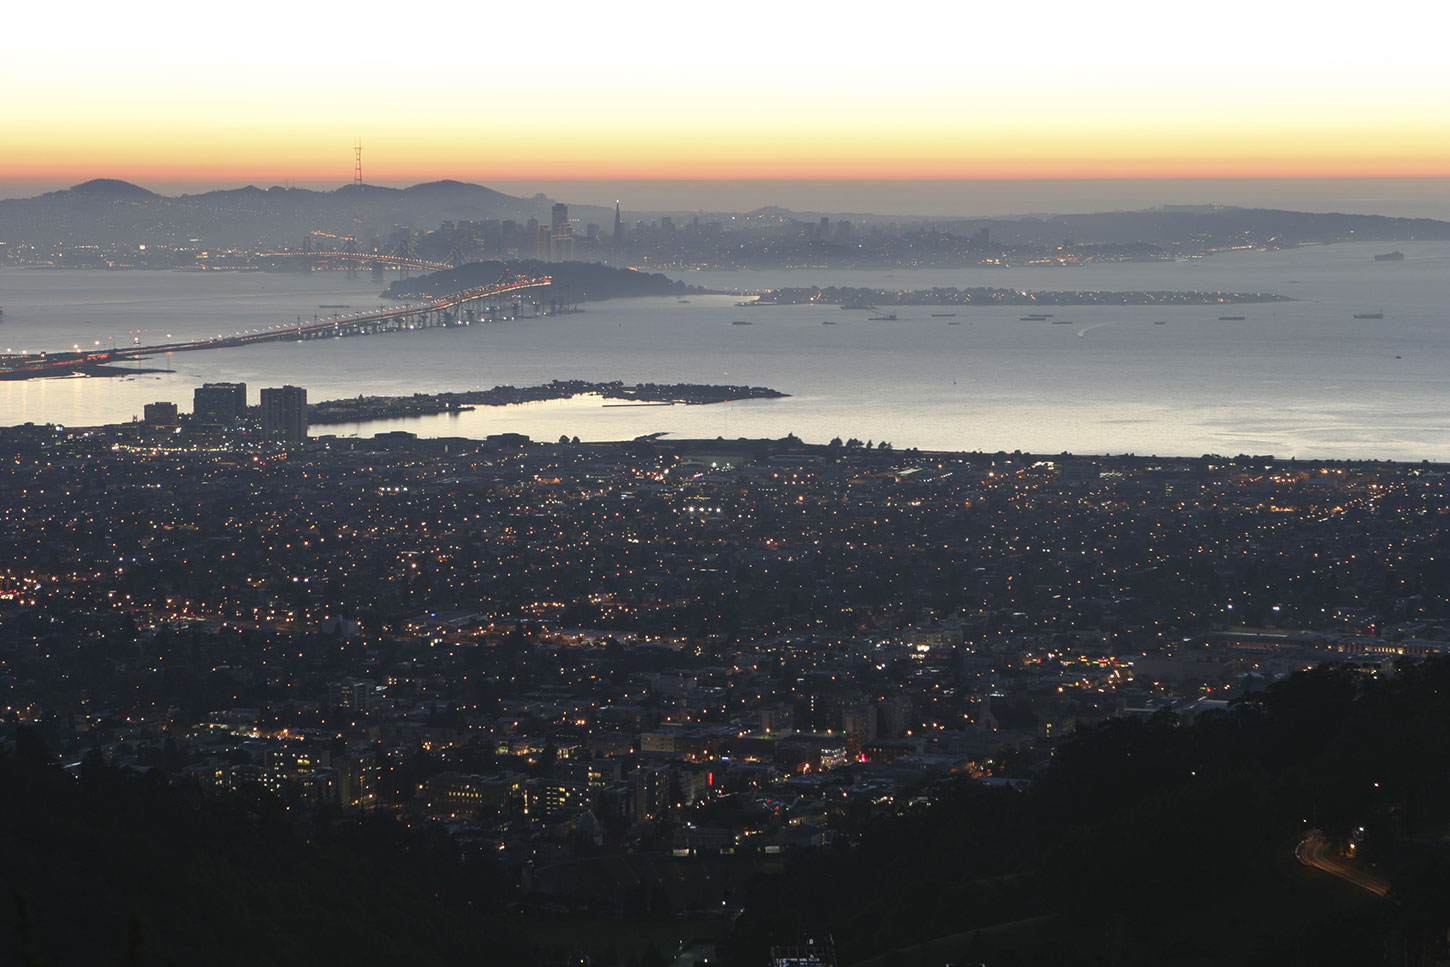 Nighttime view of San Francisco from the Berkeley Hills